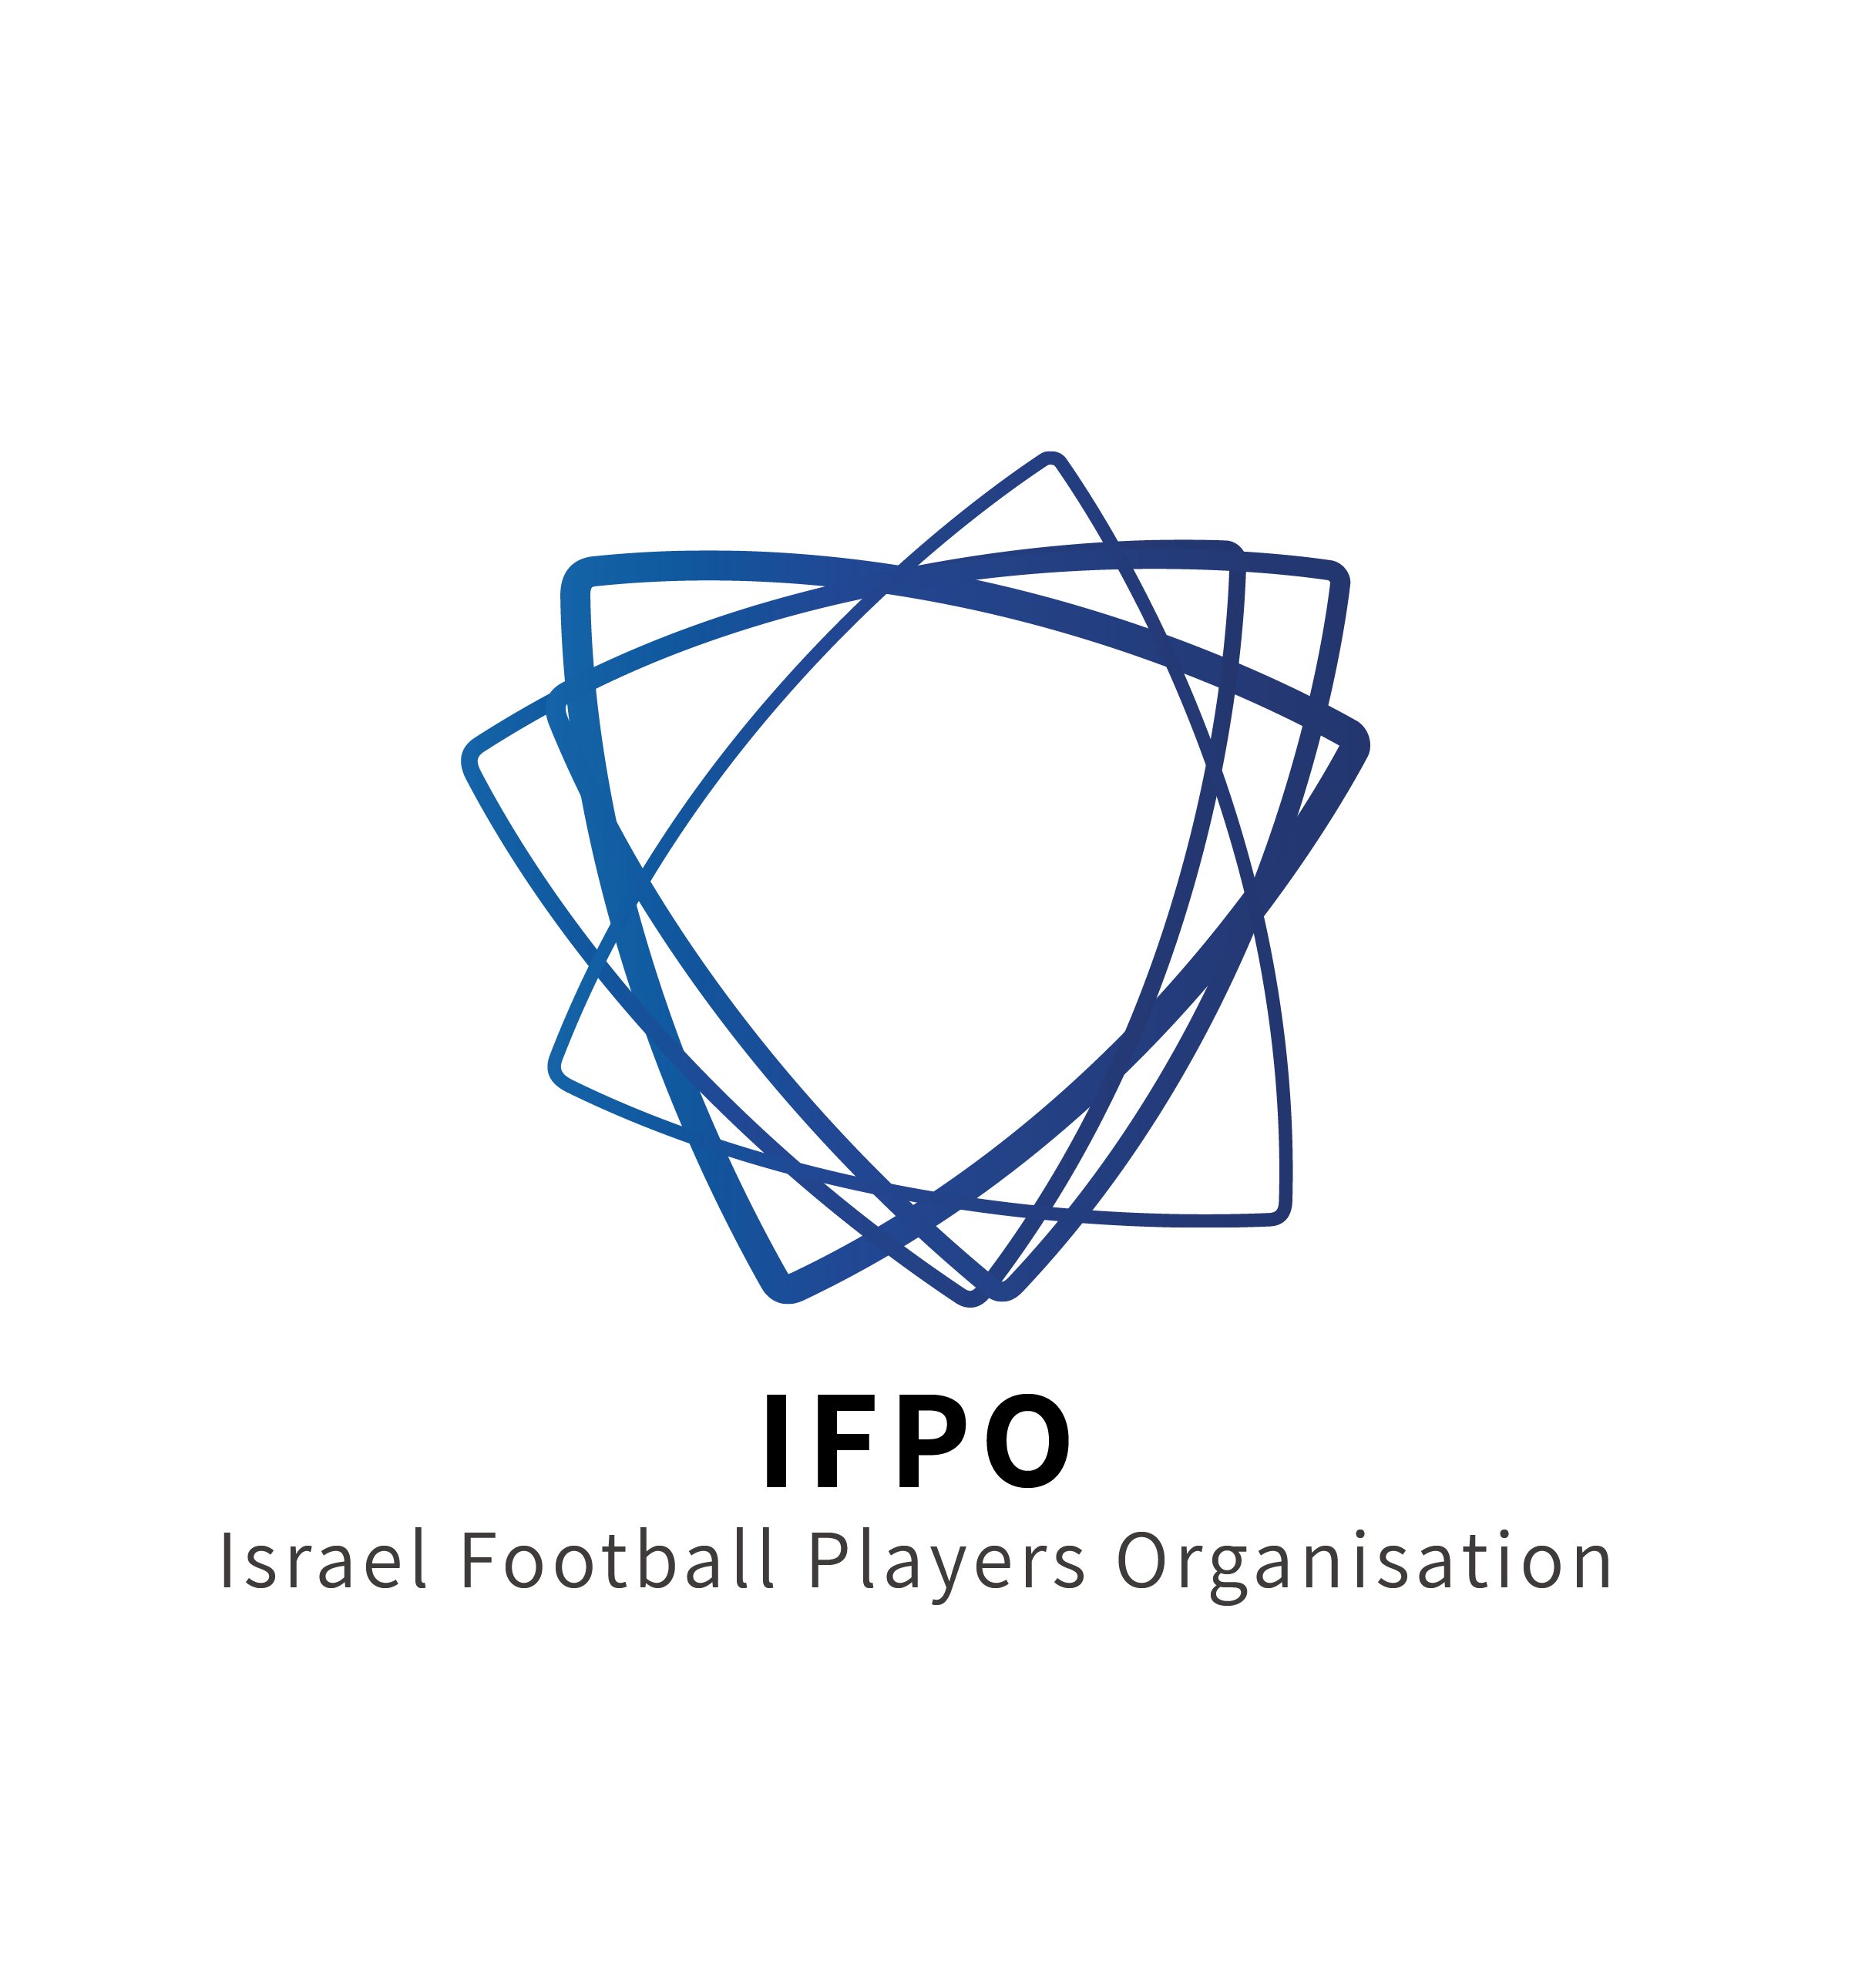 The New Israeli Football Players Association